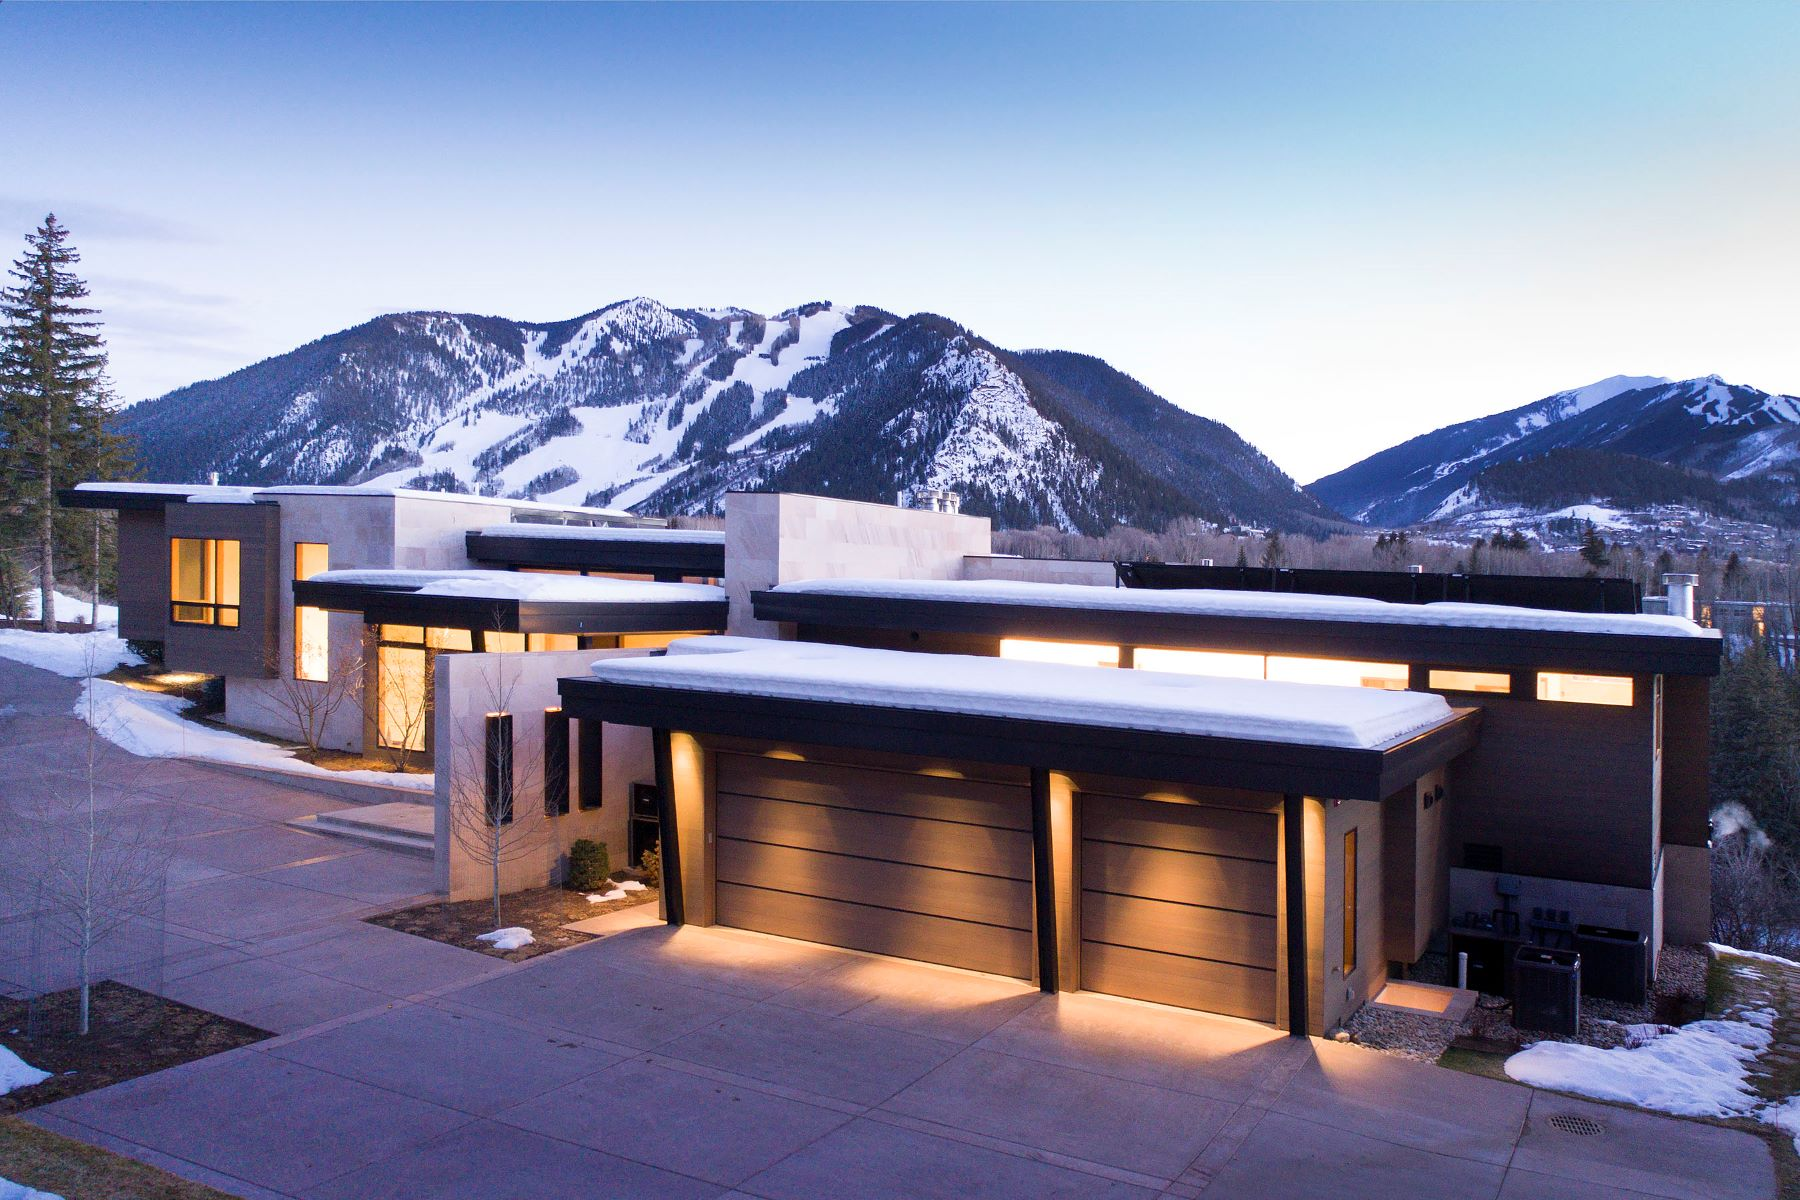 Single Family Home for Sale at New Willoughby Way Contemporary 720 Willoughby Way Aspen, Colorado 81611 United States